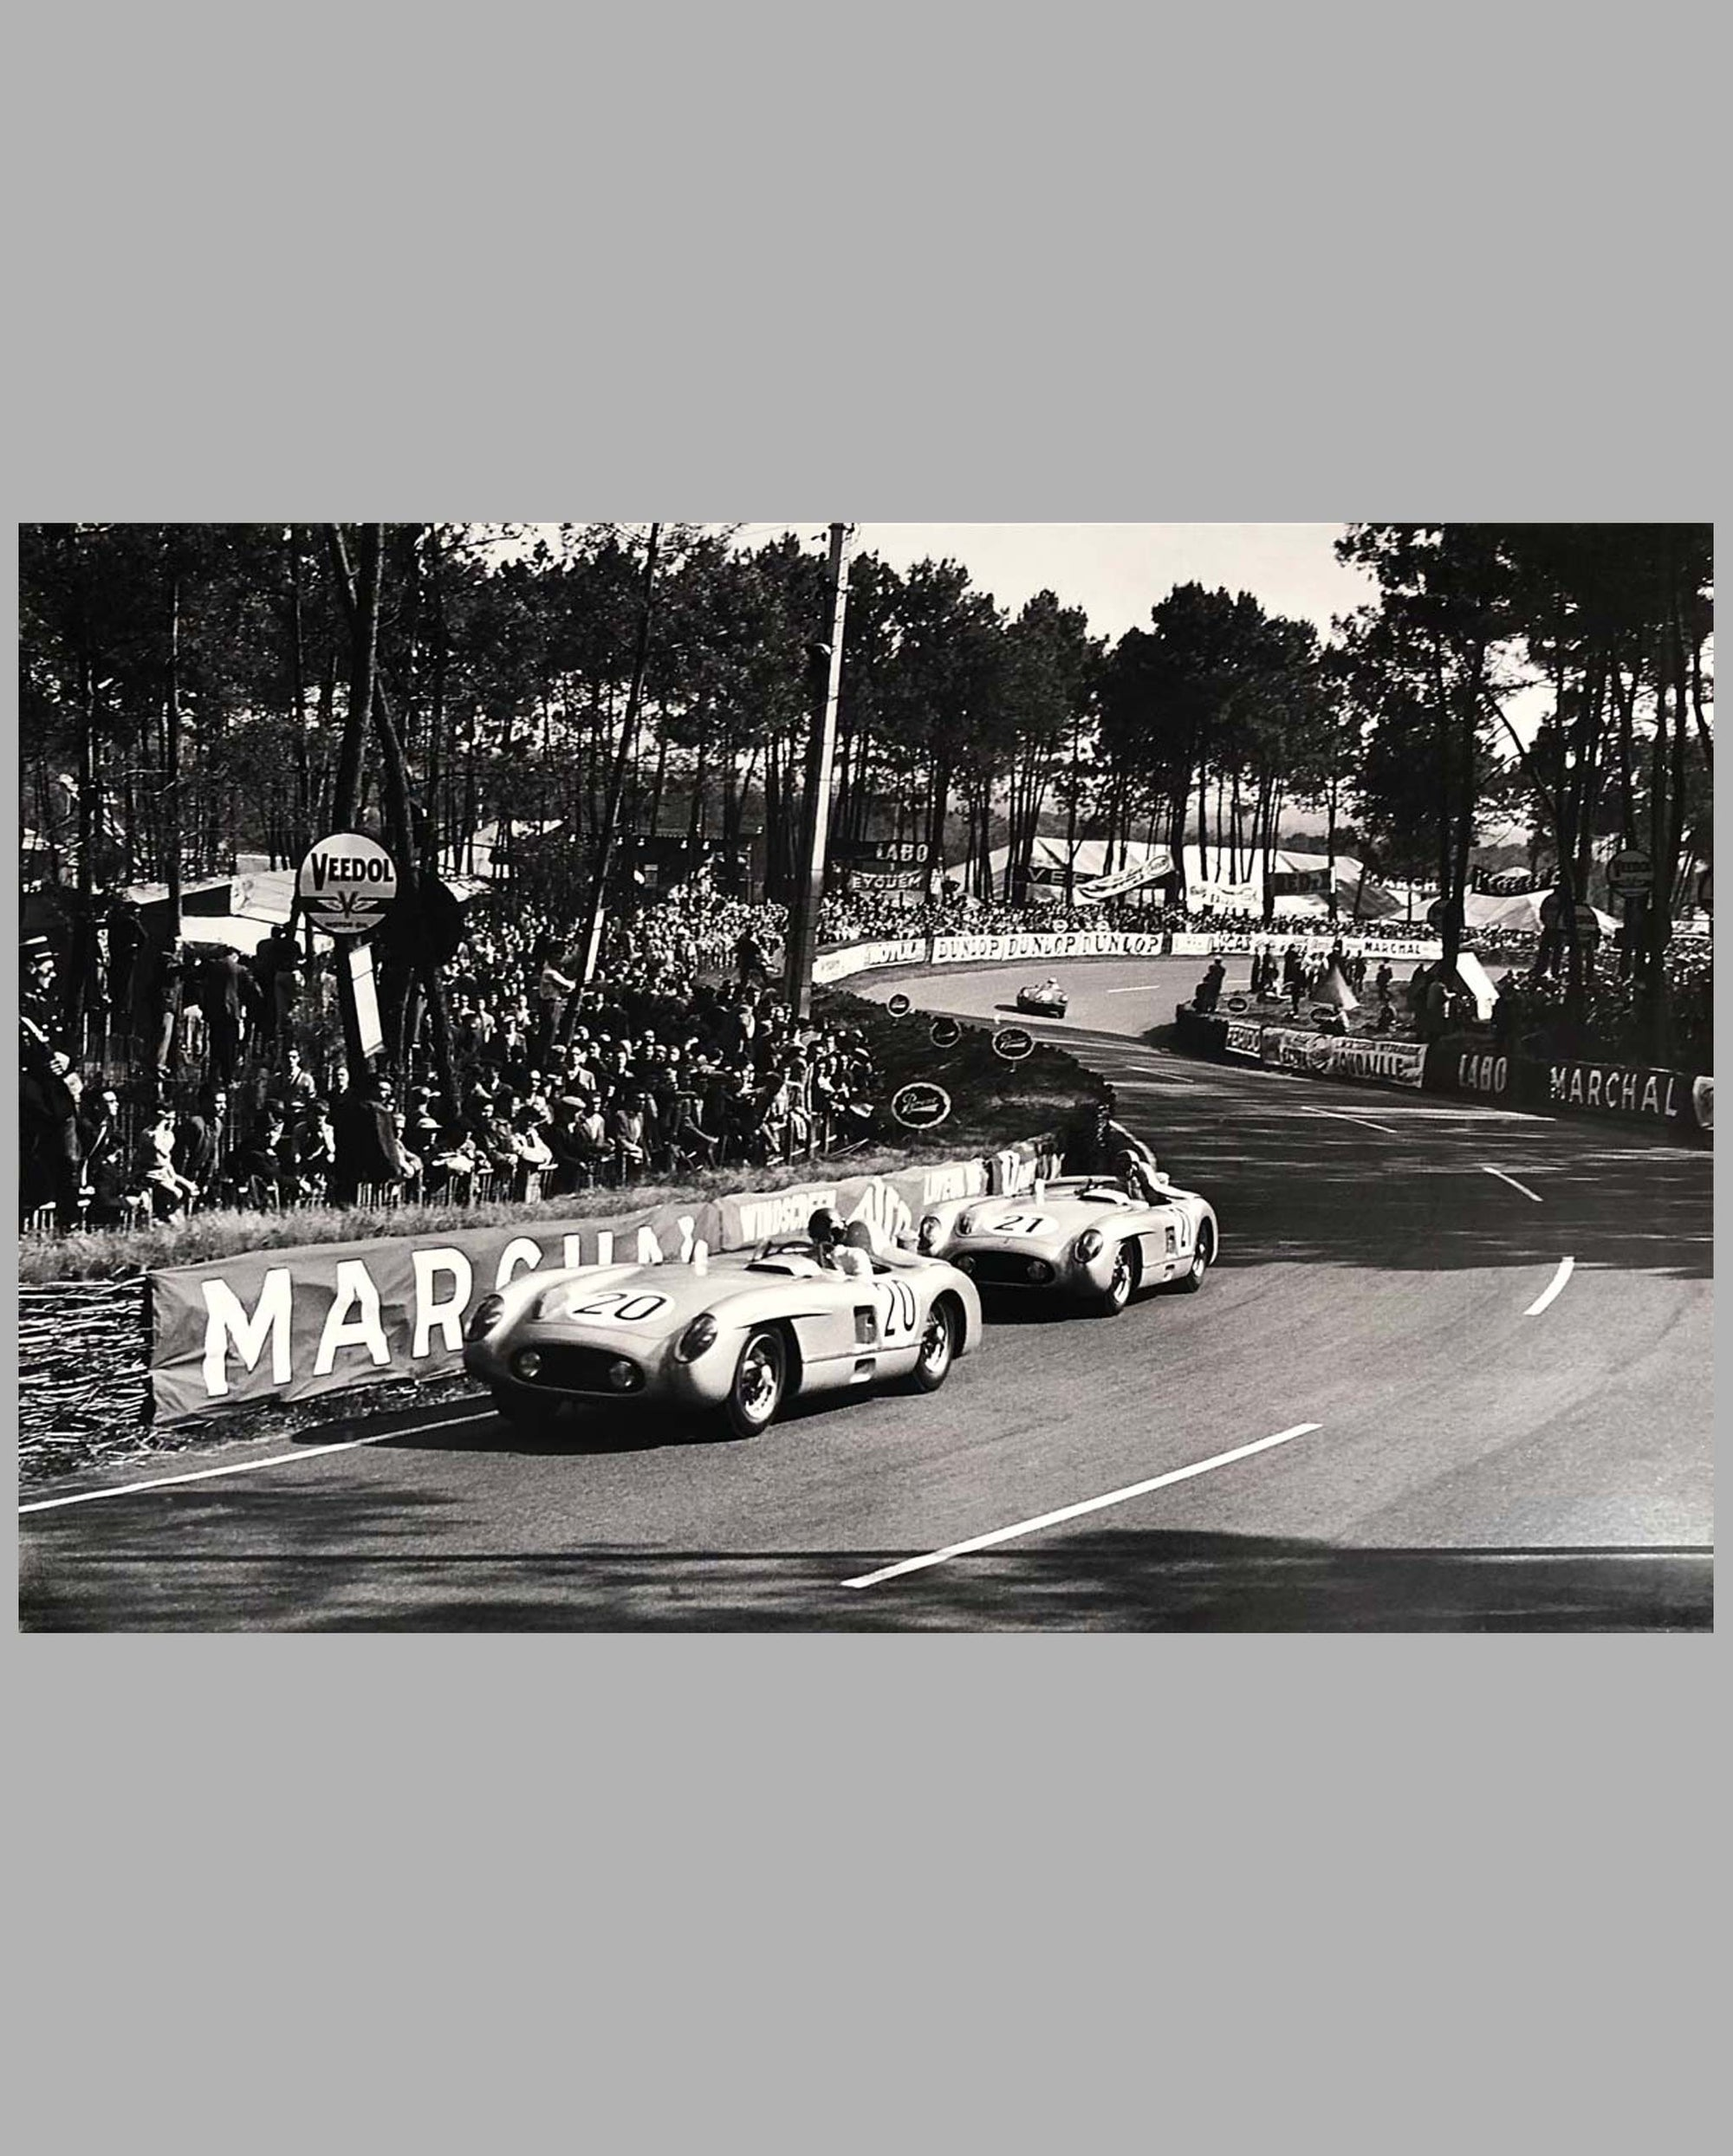 10 - 1955 - 24 Hours of Le Mans large photograph